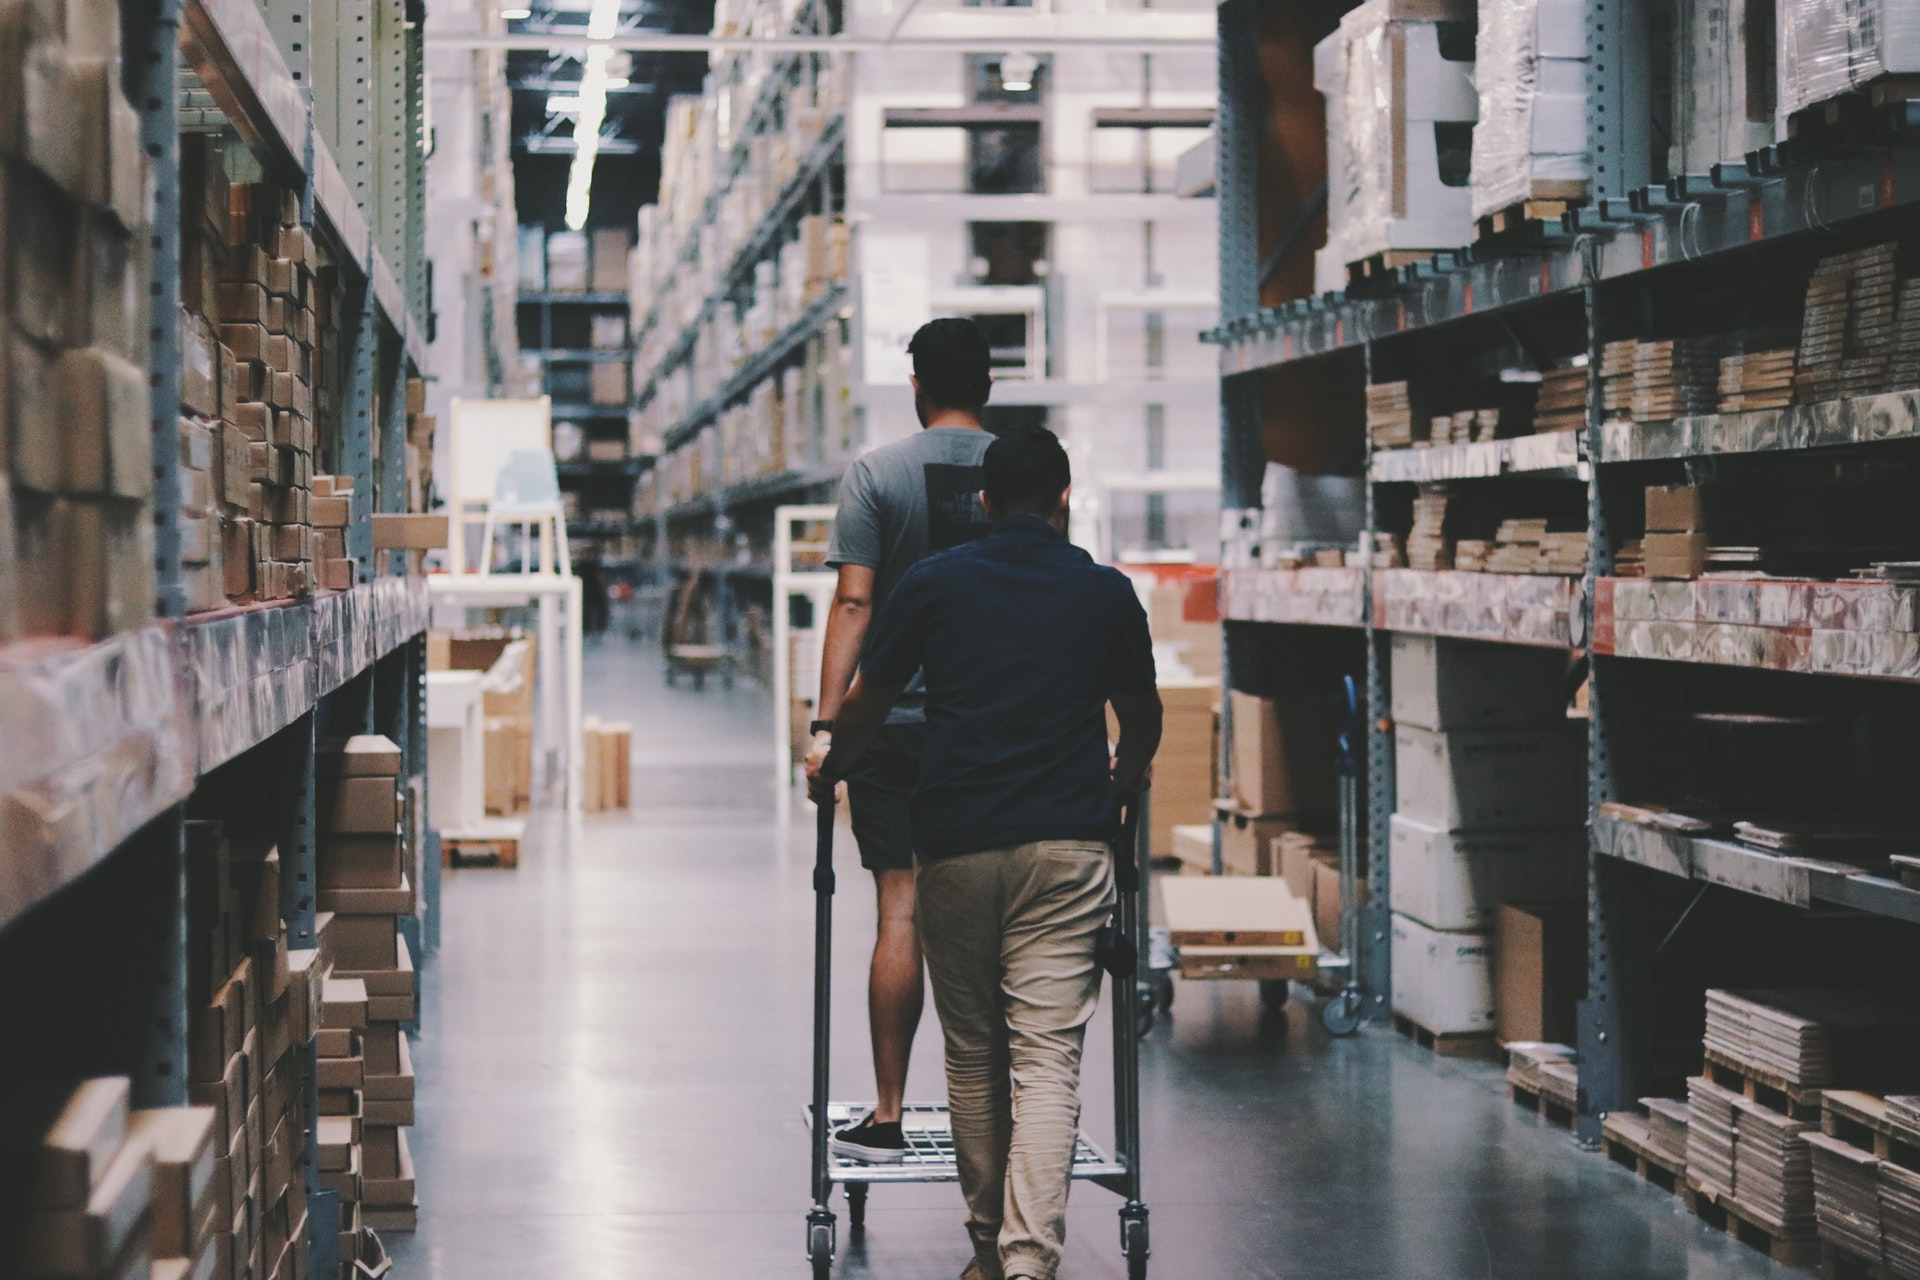 3 Quick Inventory Management Techniques to Save Money & Improve Efficiency